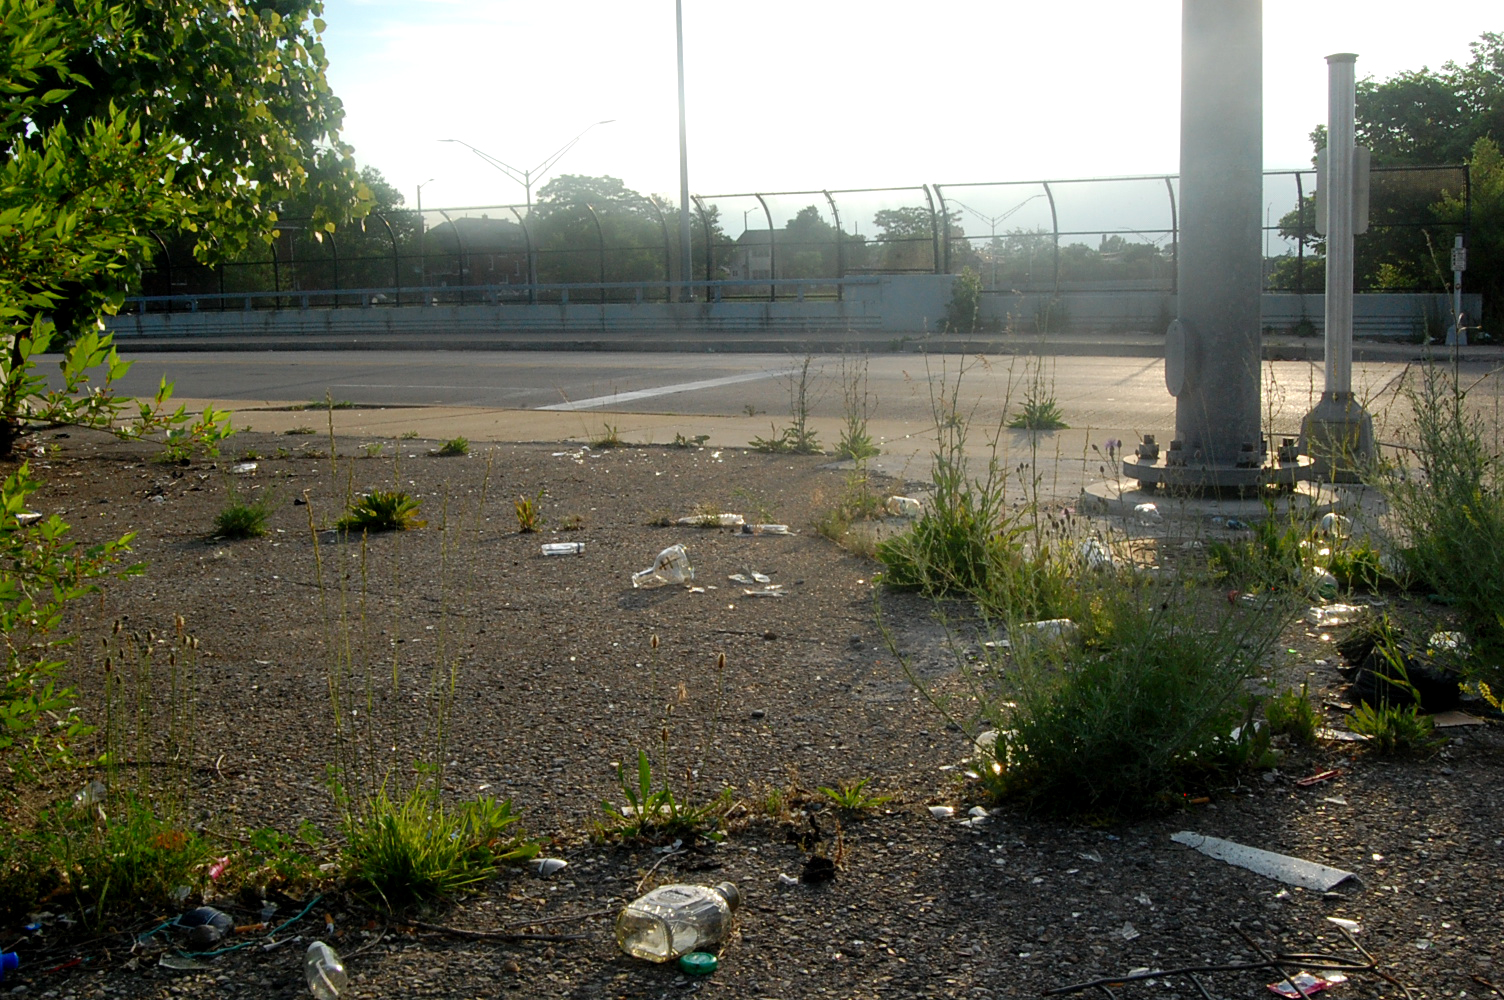 DISCARDED TRASH AT THE INTERSECTION OF JEFFRIES AND JOY IN DETROIT. PHOTO LUCAS RESETAR